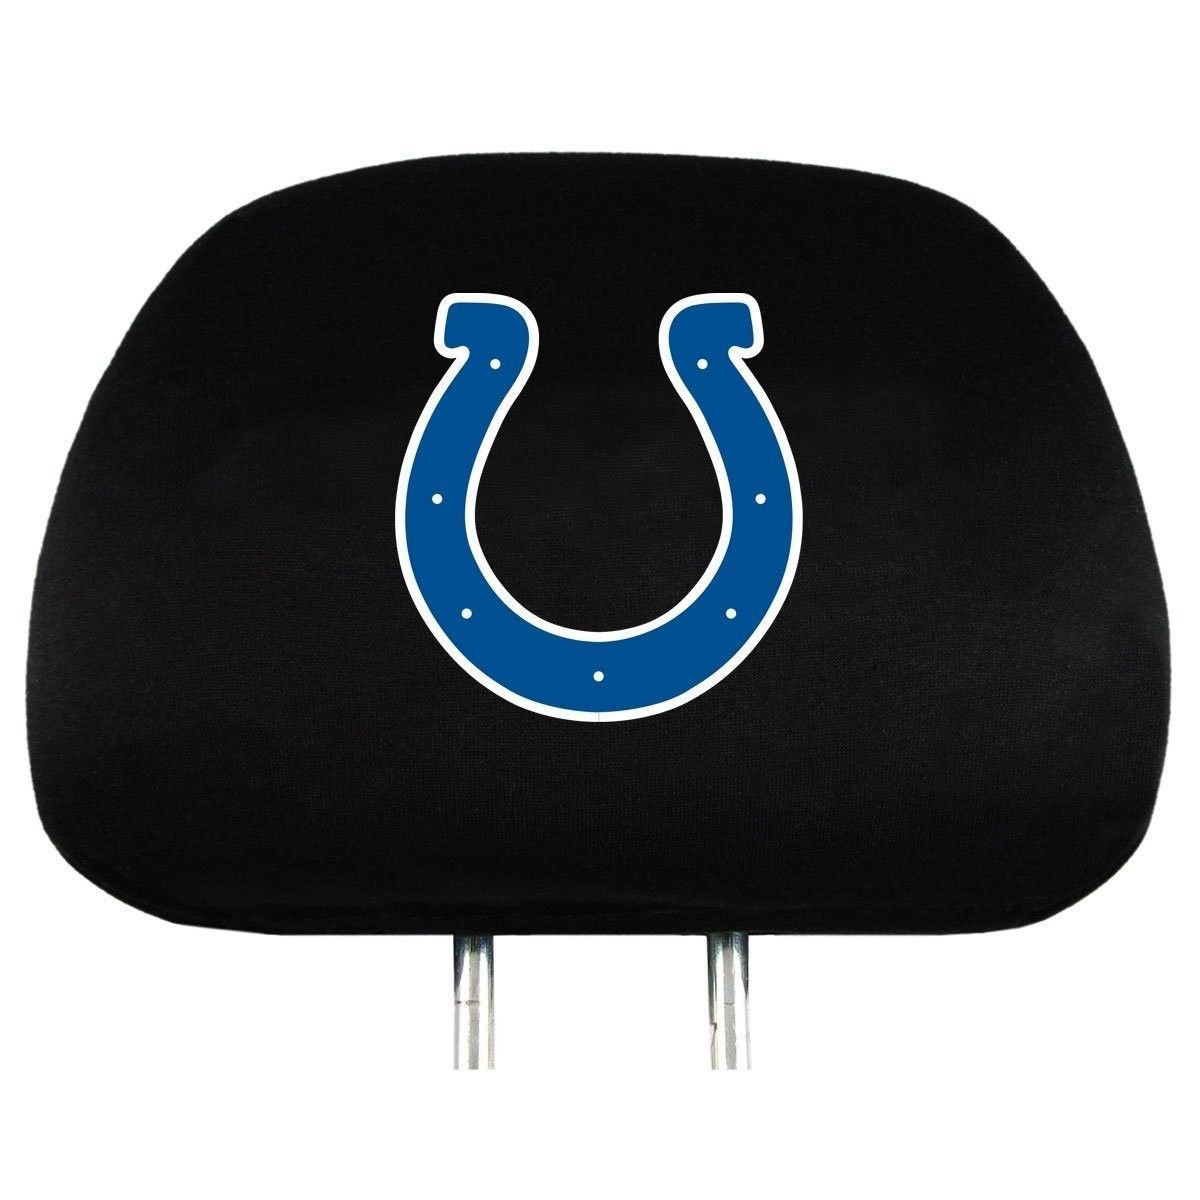 INDIANAPOLIS COLTS CAR AUTO 2 TEAM HEAD REST COVERS  NFL FOOTBALL